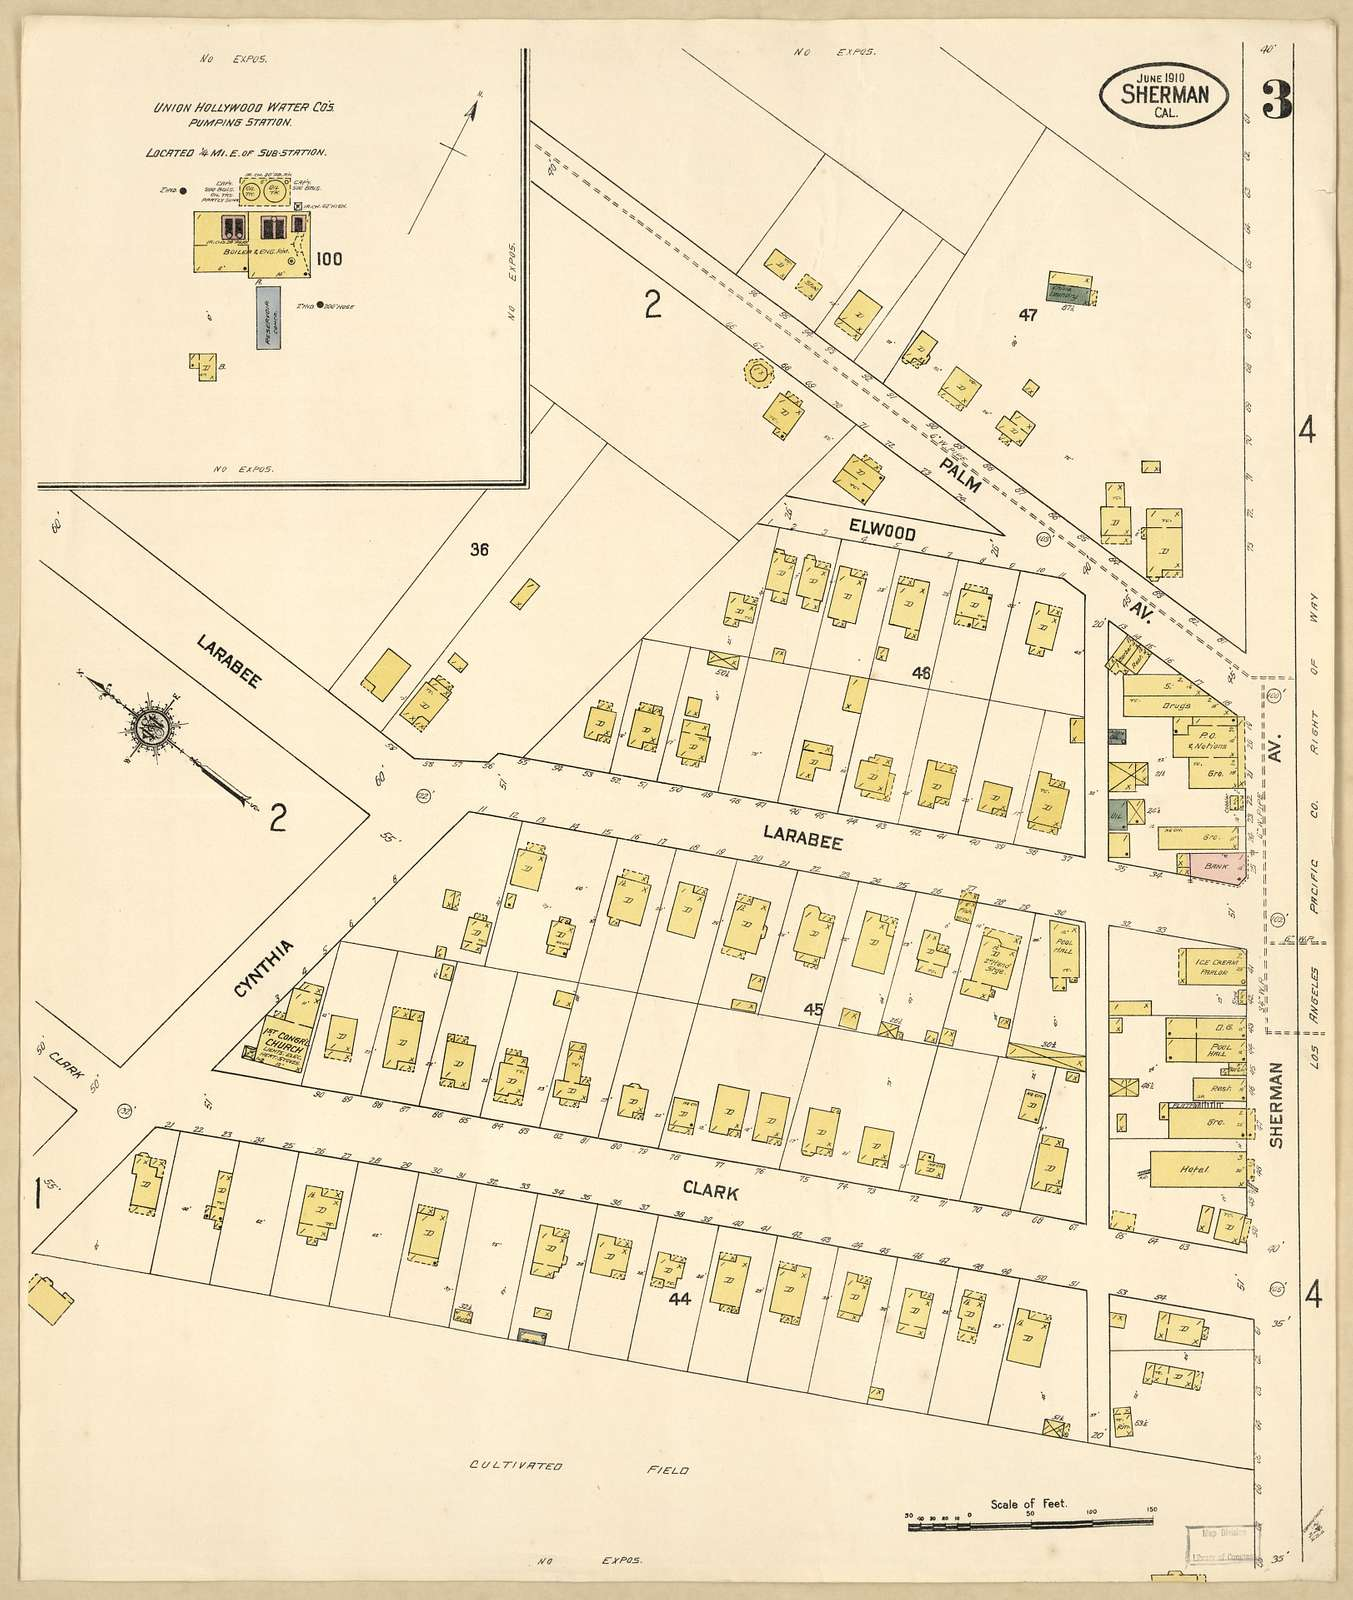 Sanborn Fire Insurance Map from Sherman, Los Angeles County, California.